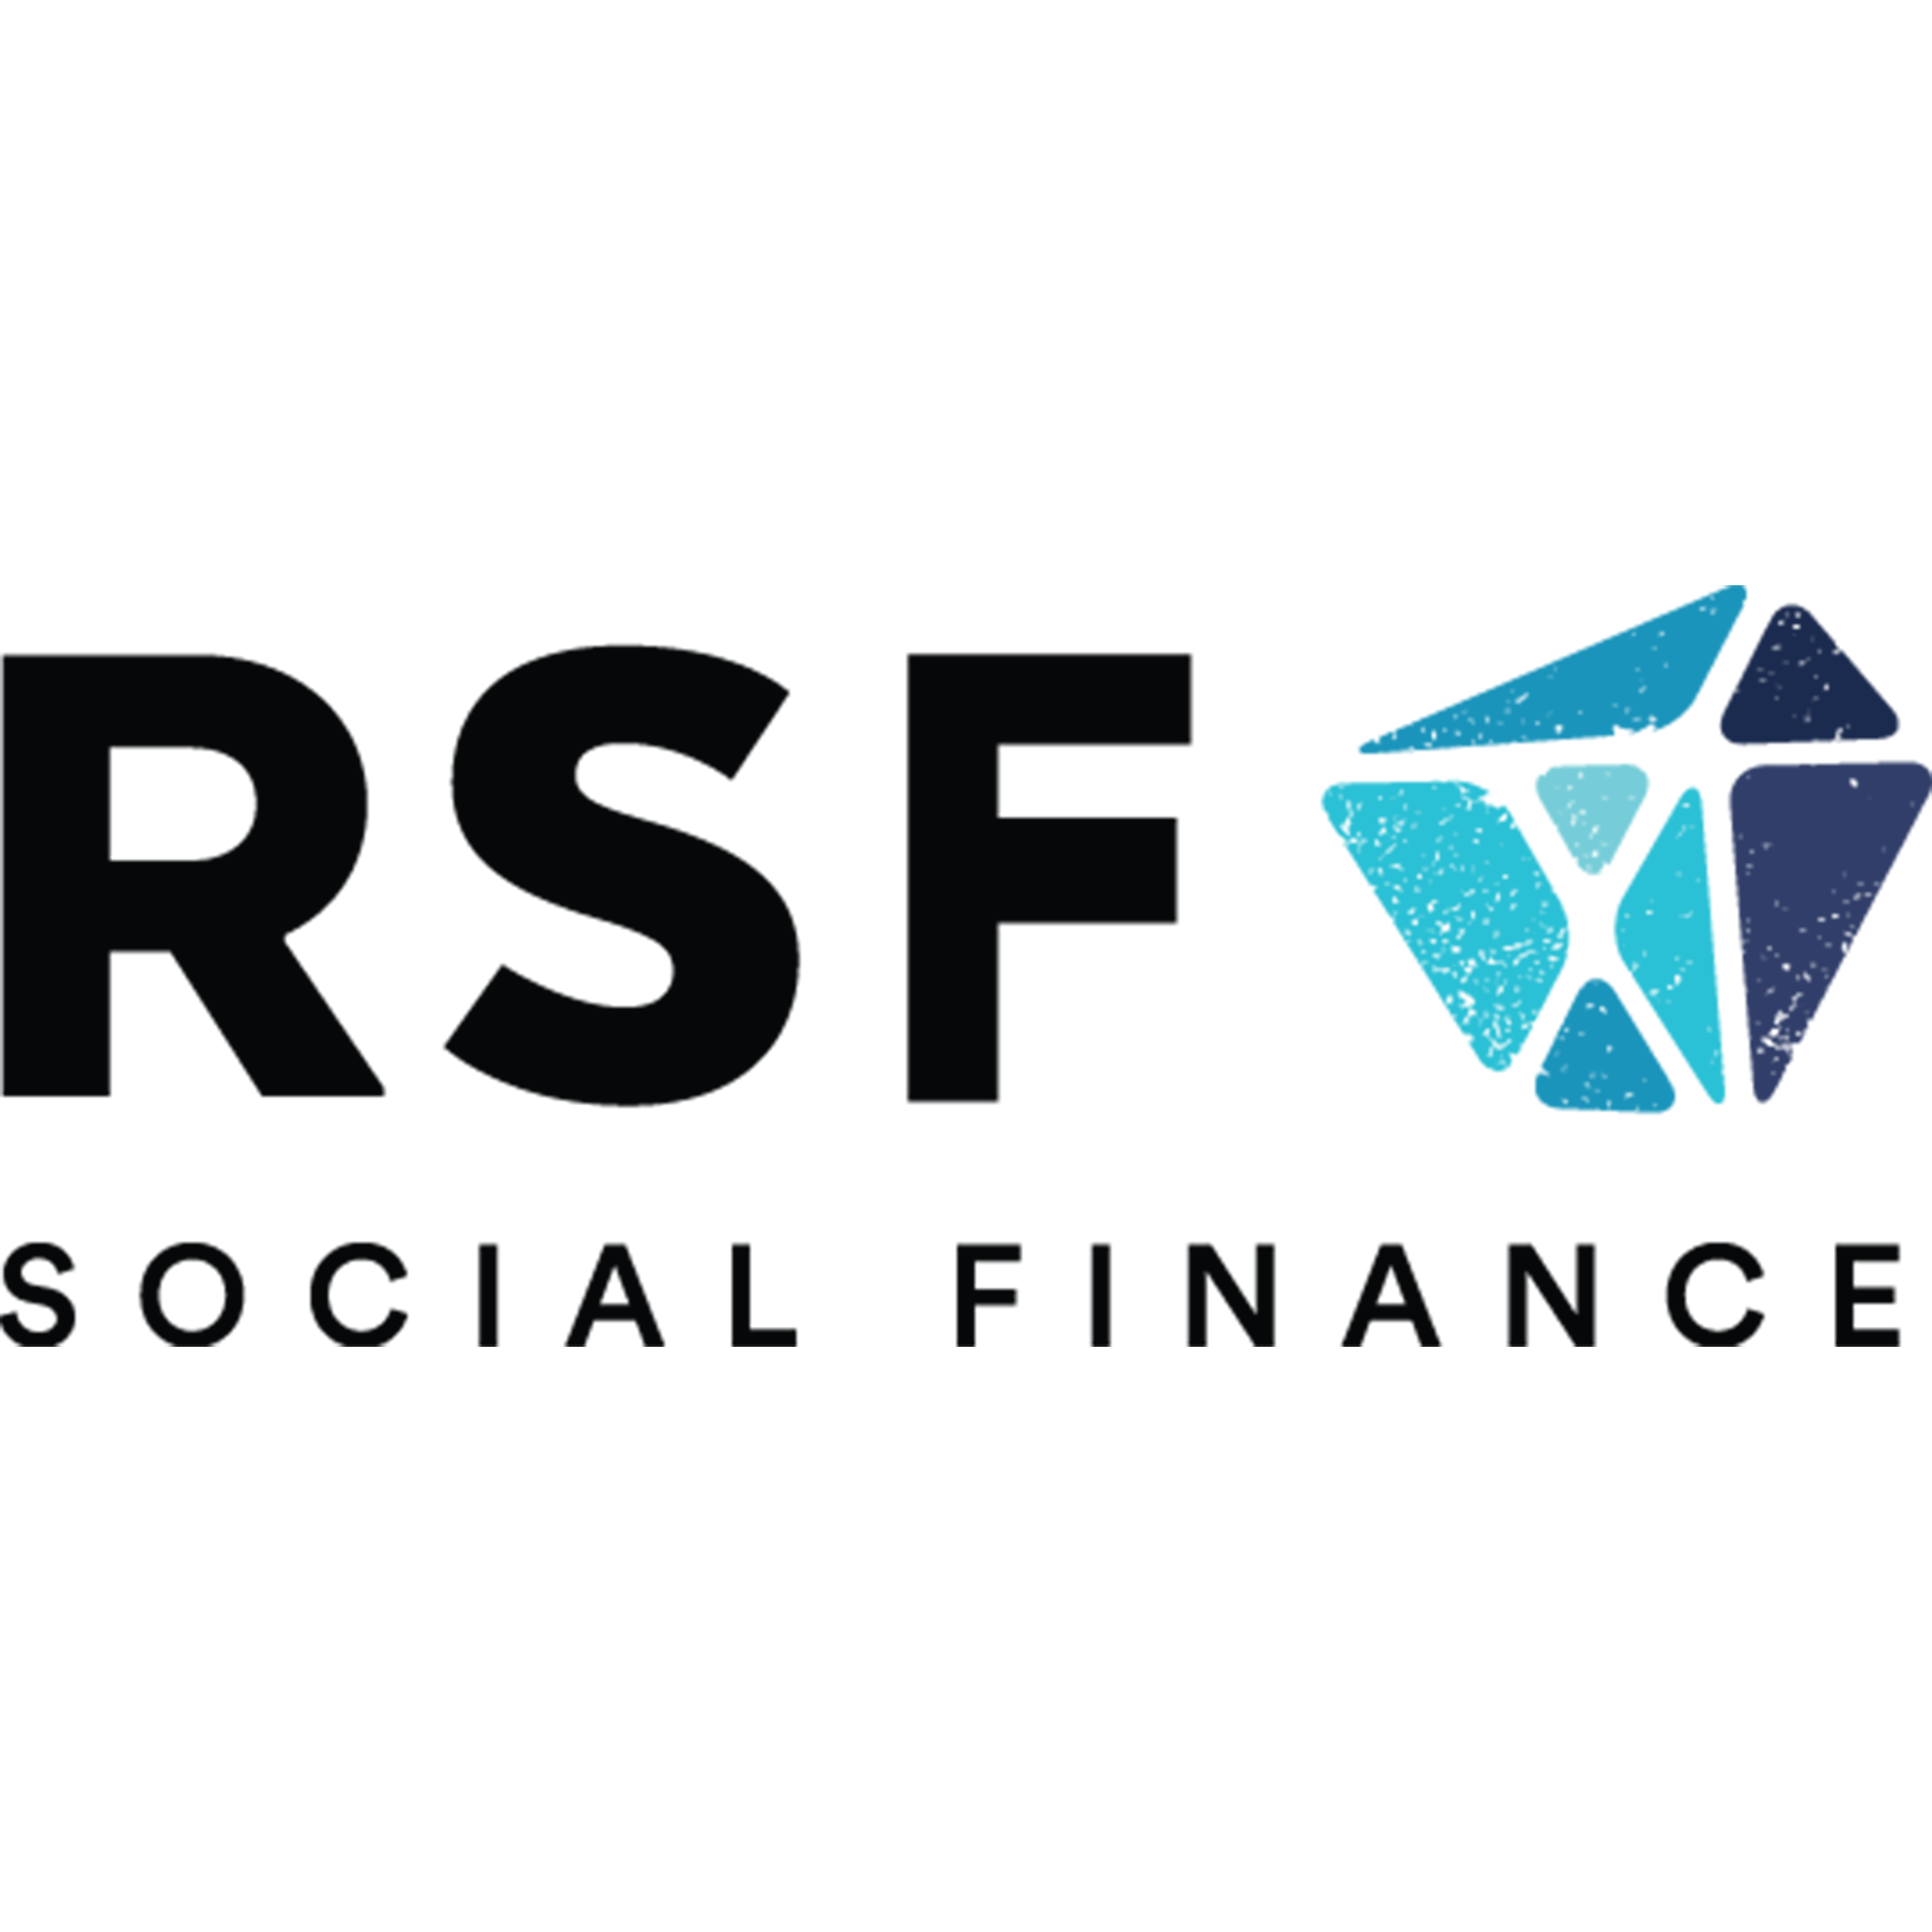 RSF-logo-hq-transparent-RSF-Social-Finance.png